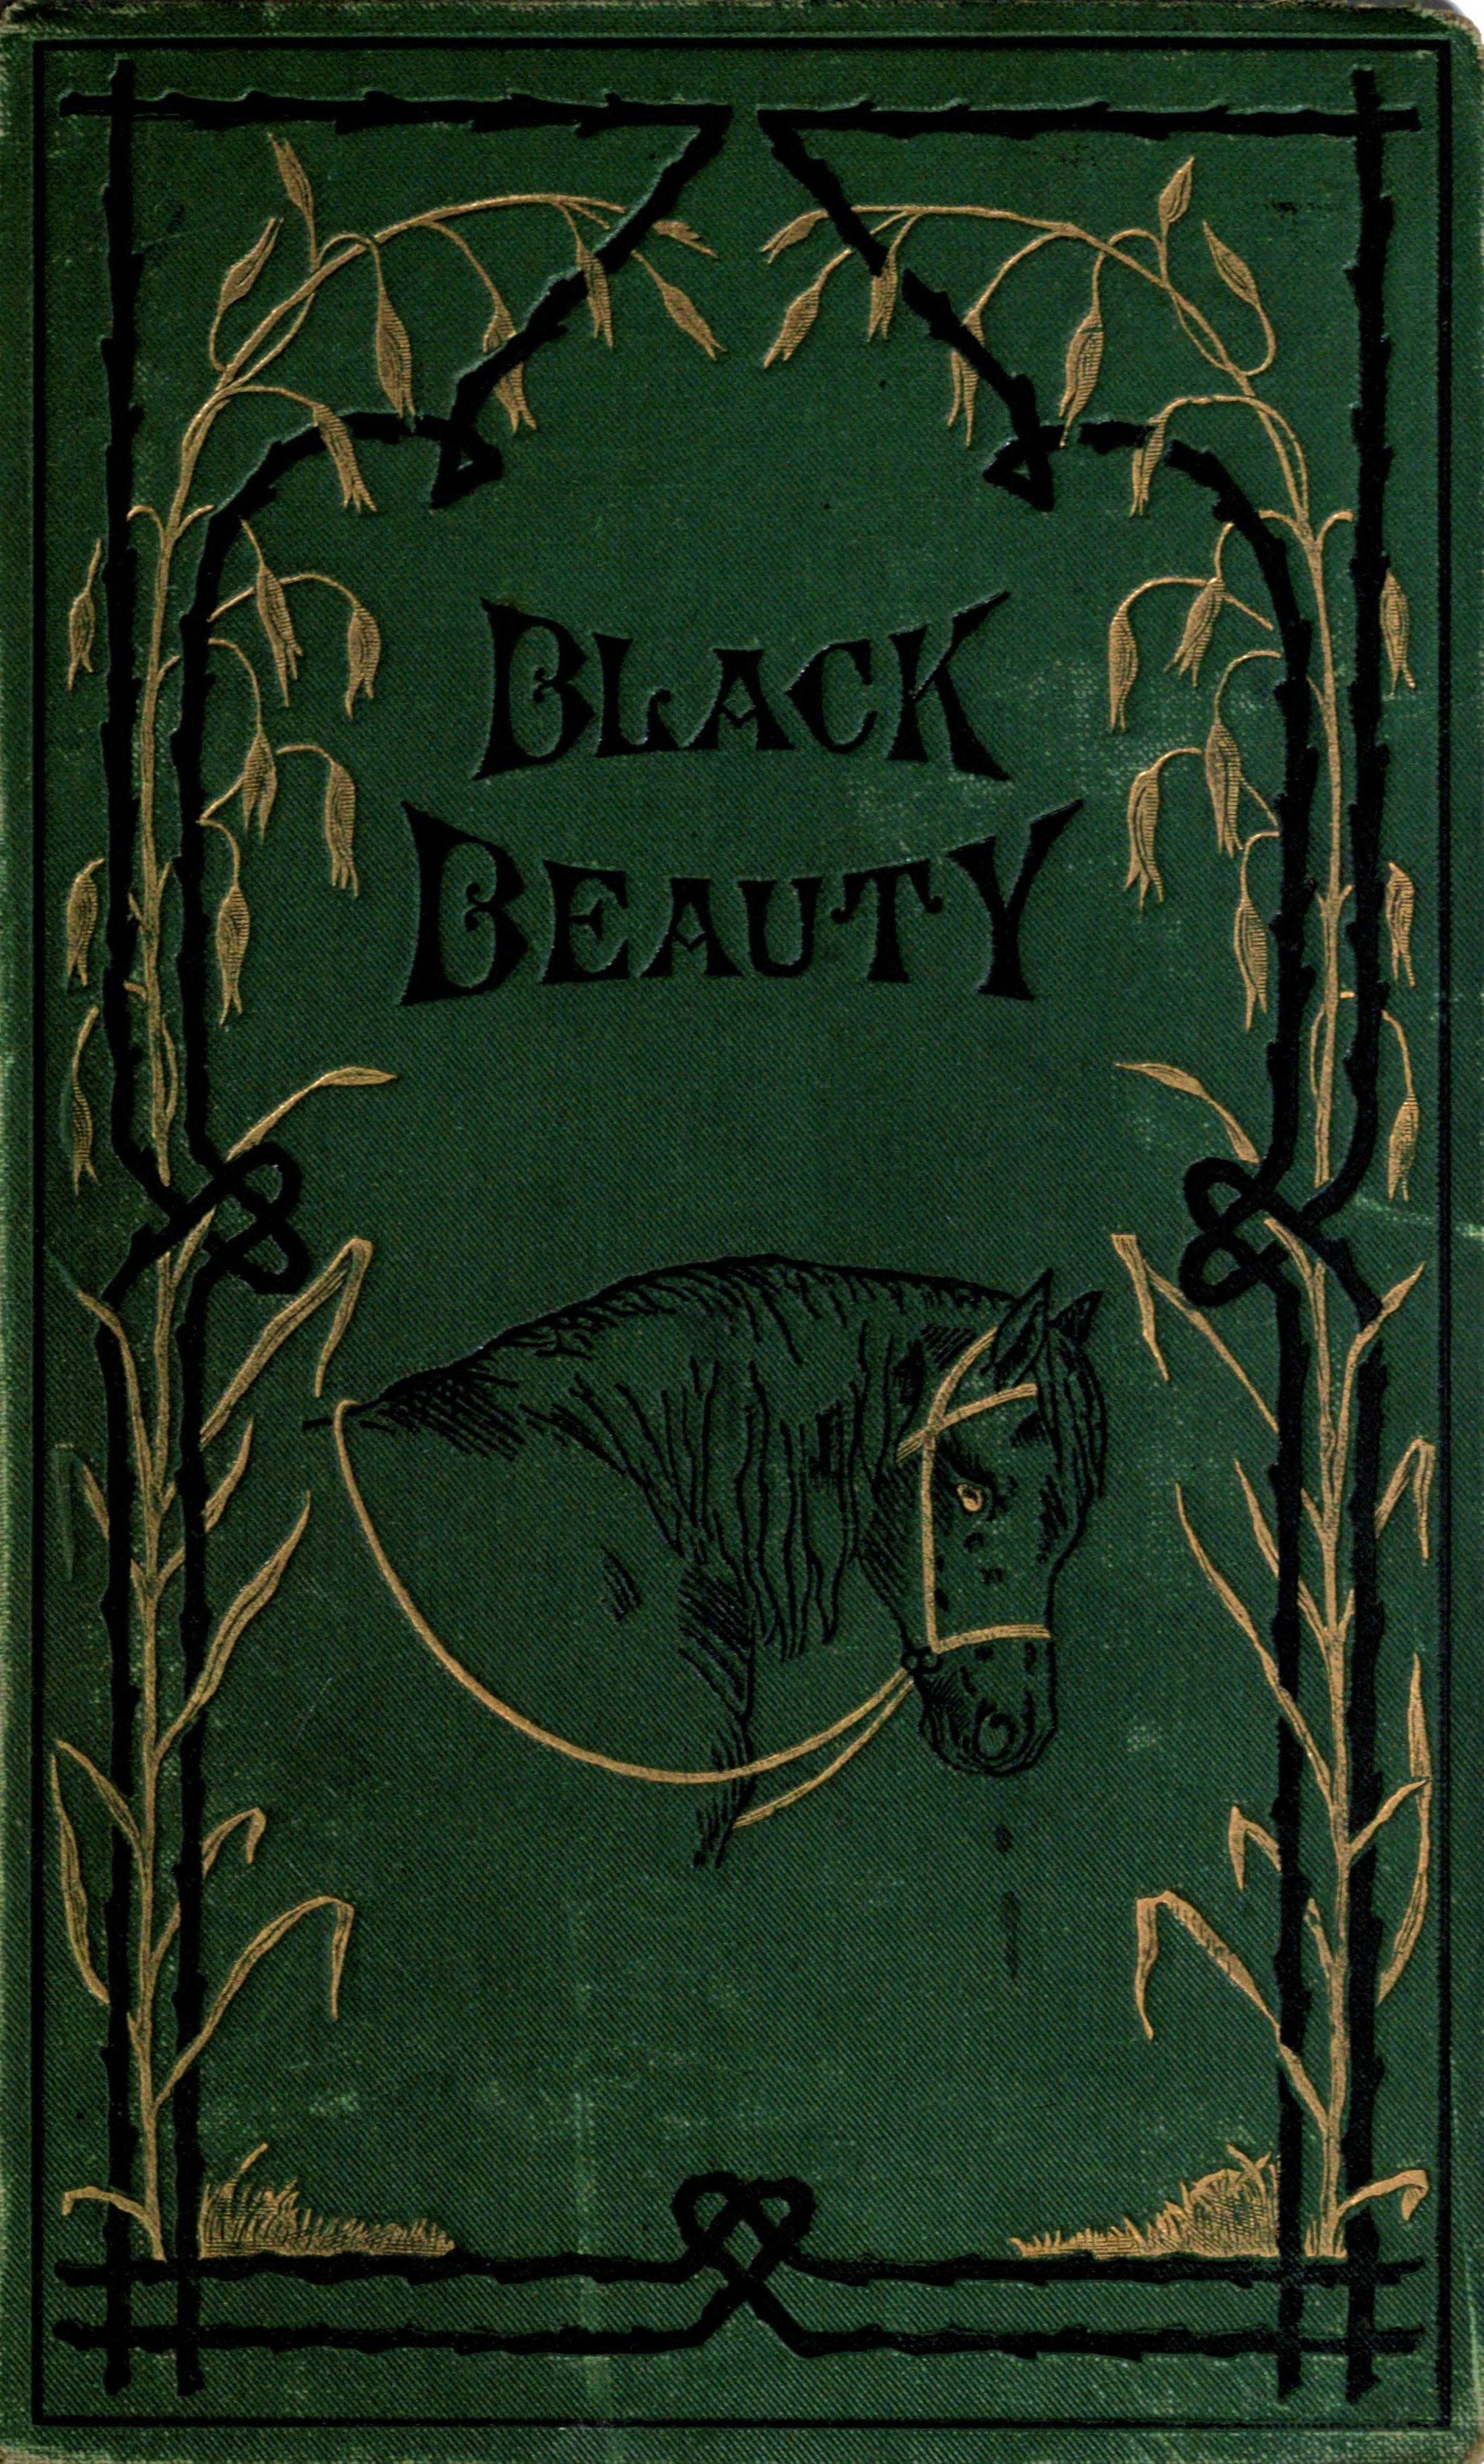 Black Beauty Original Book Cover : File black beauty cover g wikimedia commons